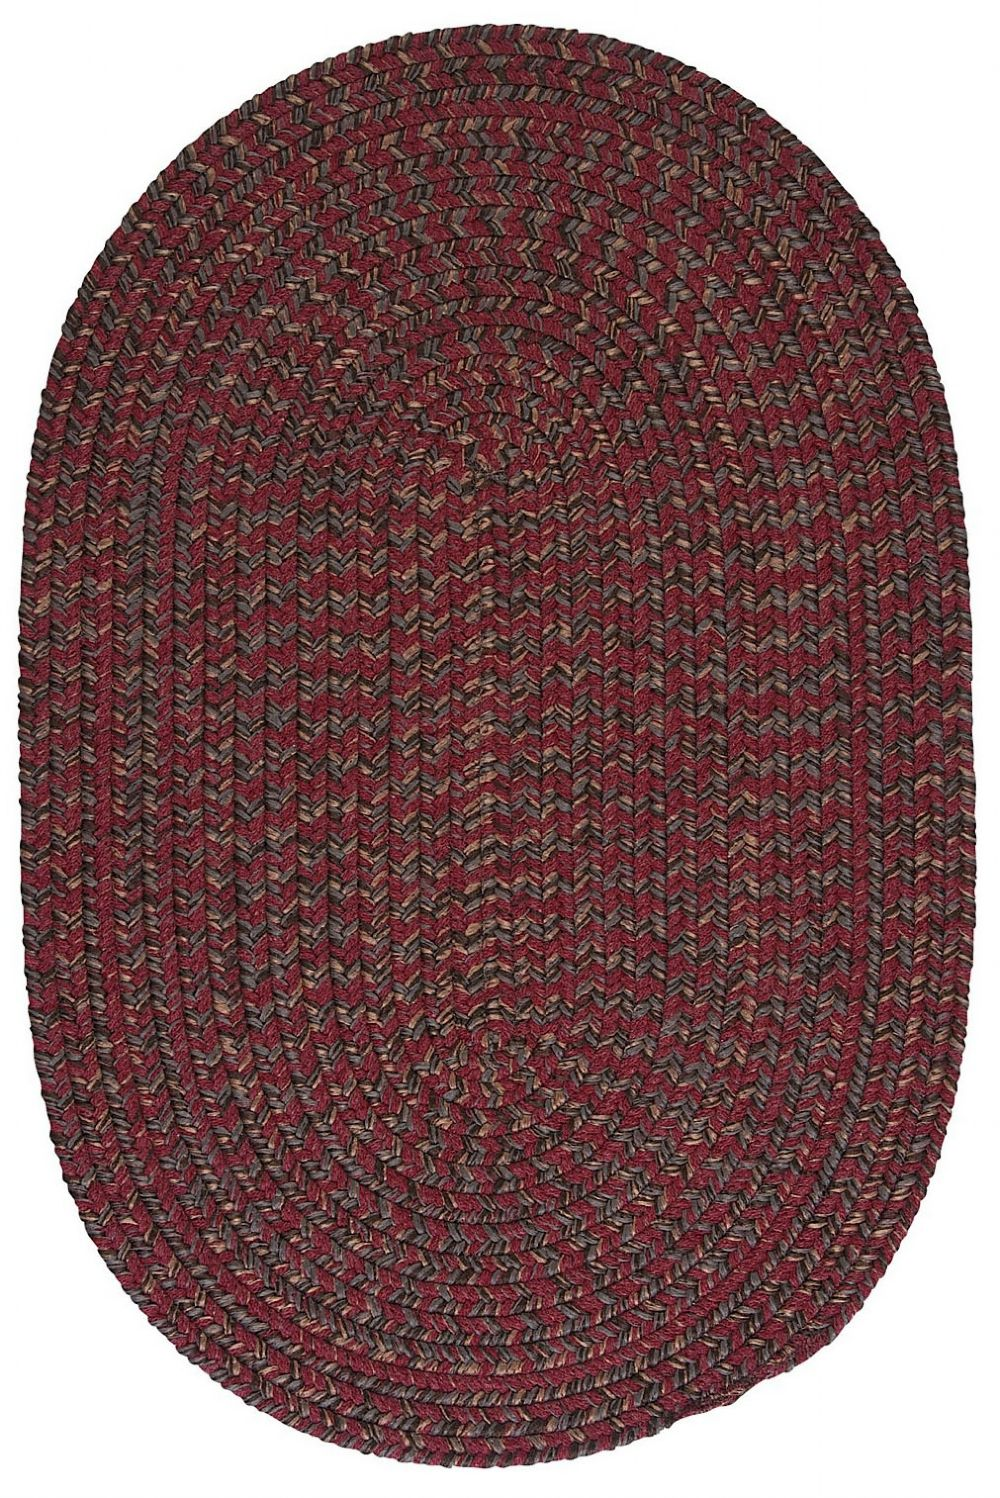 colonial mills hayward braided area rug collection